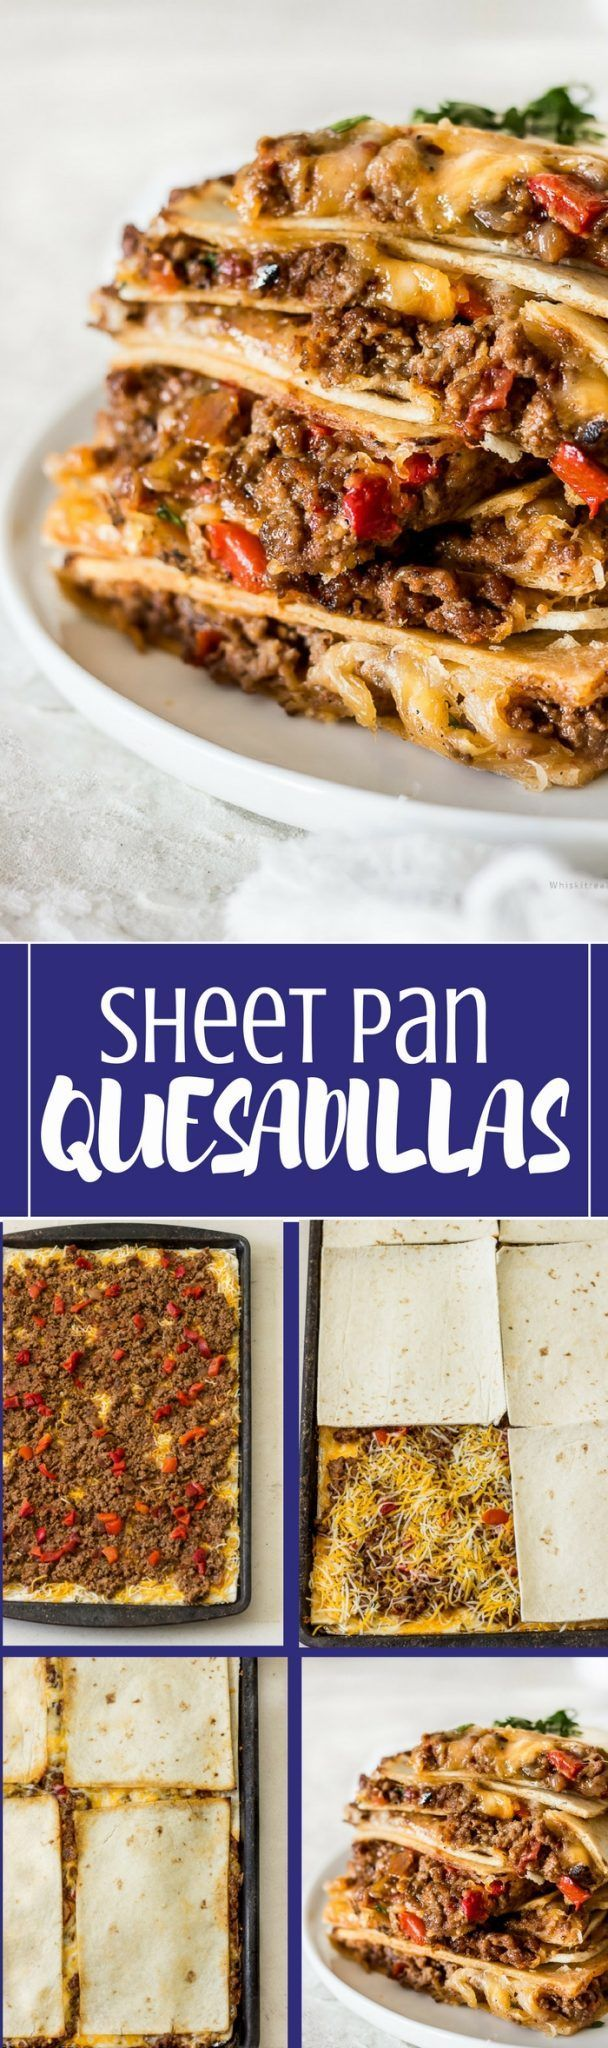 Sheet pan quesadillas are baked in the oven instead of the stove.  These baking sheet quesadillas are made with soft flour tortillas and loaded with ground beef filling, seasoned with Mexican taco seasonings, roasted red peppers, optional homemade salsa mixed with a bit of tomato sauce and of course lots of melted gooey cheese. This is a fun way to make a large quantity of quesadillas in the oven for your family or a crowd fast!